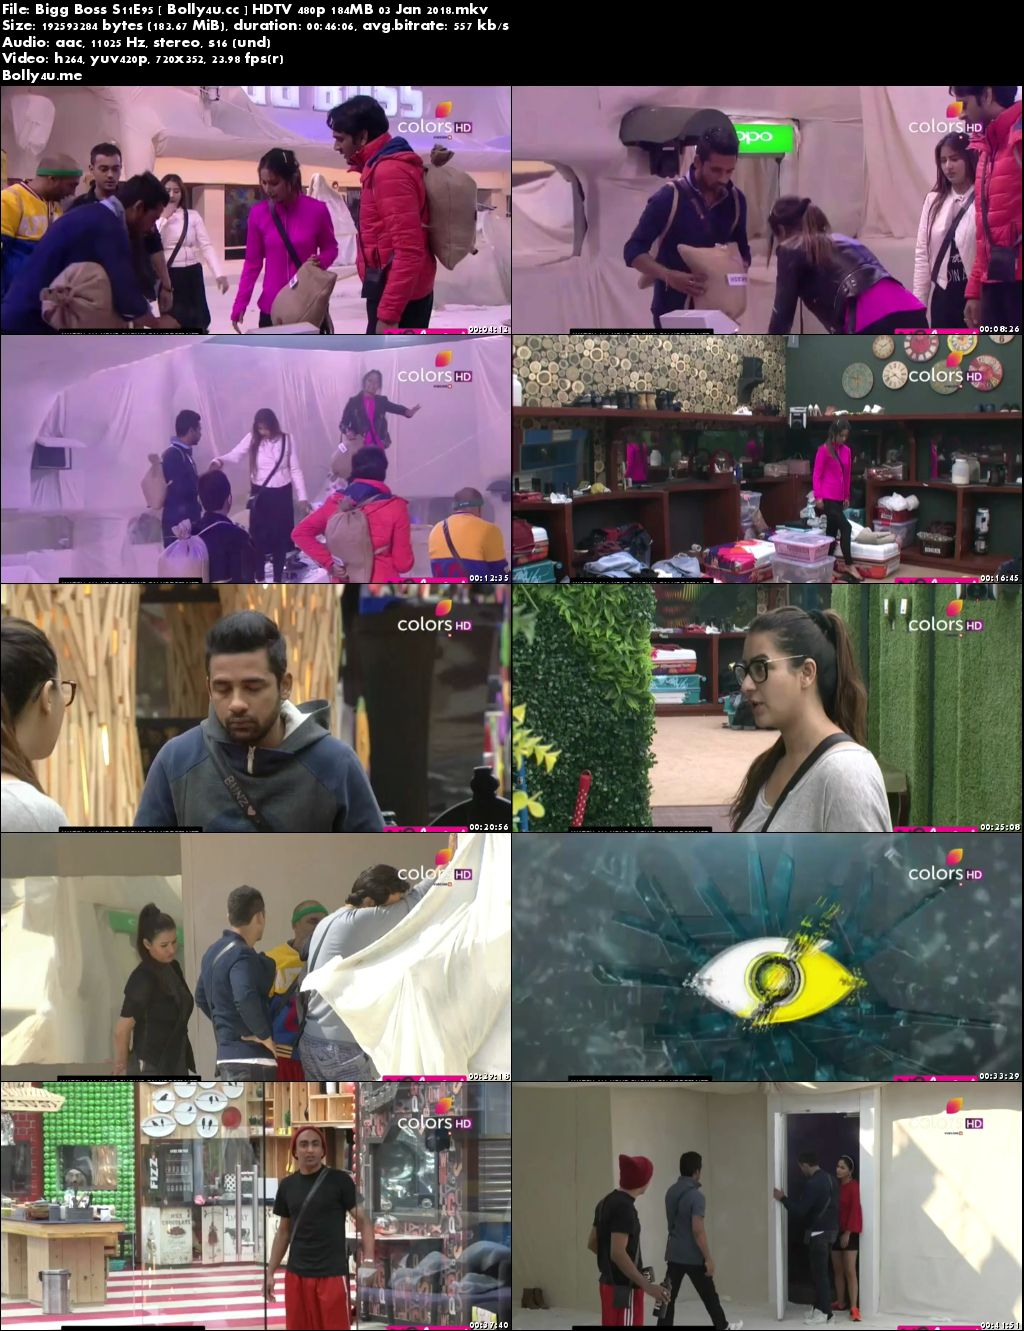 Bigg Boss S11E95 HDTV 480p 180MB 03 Jan 2018 Download